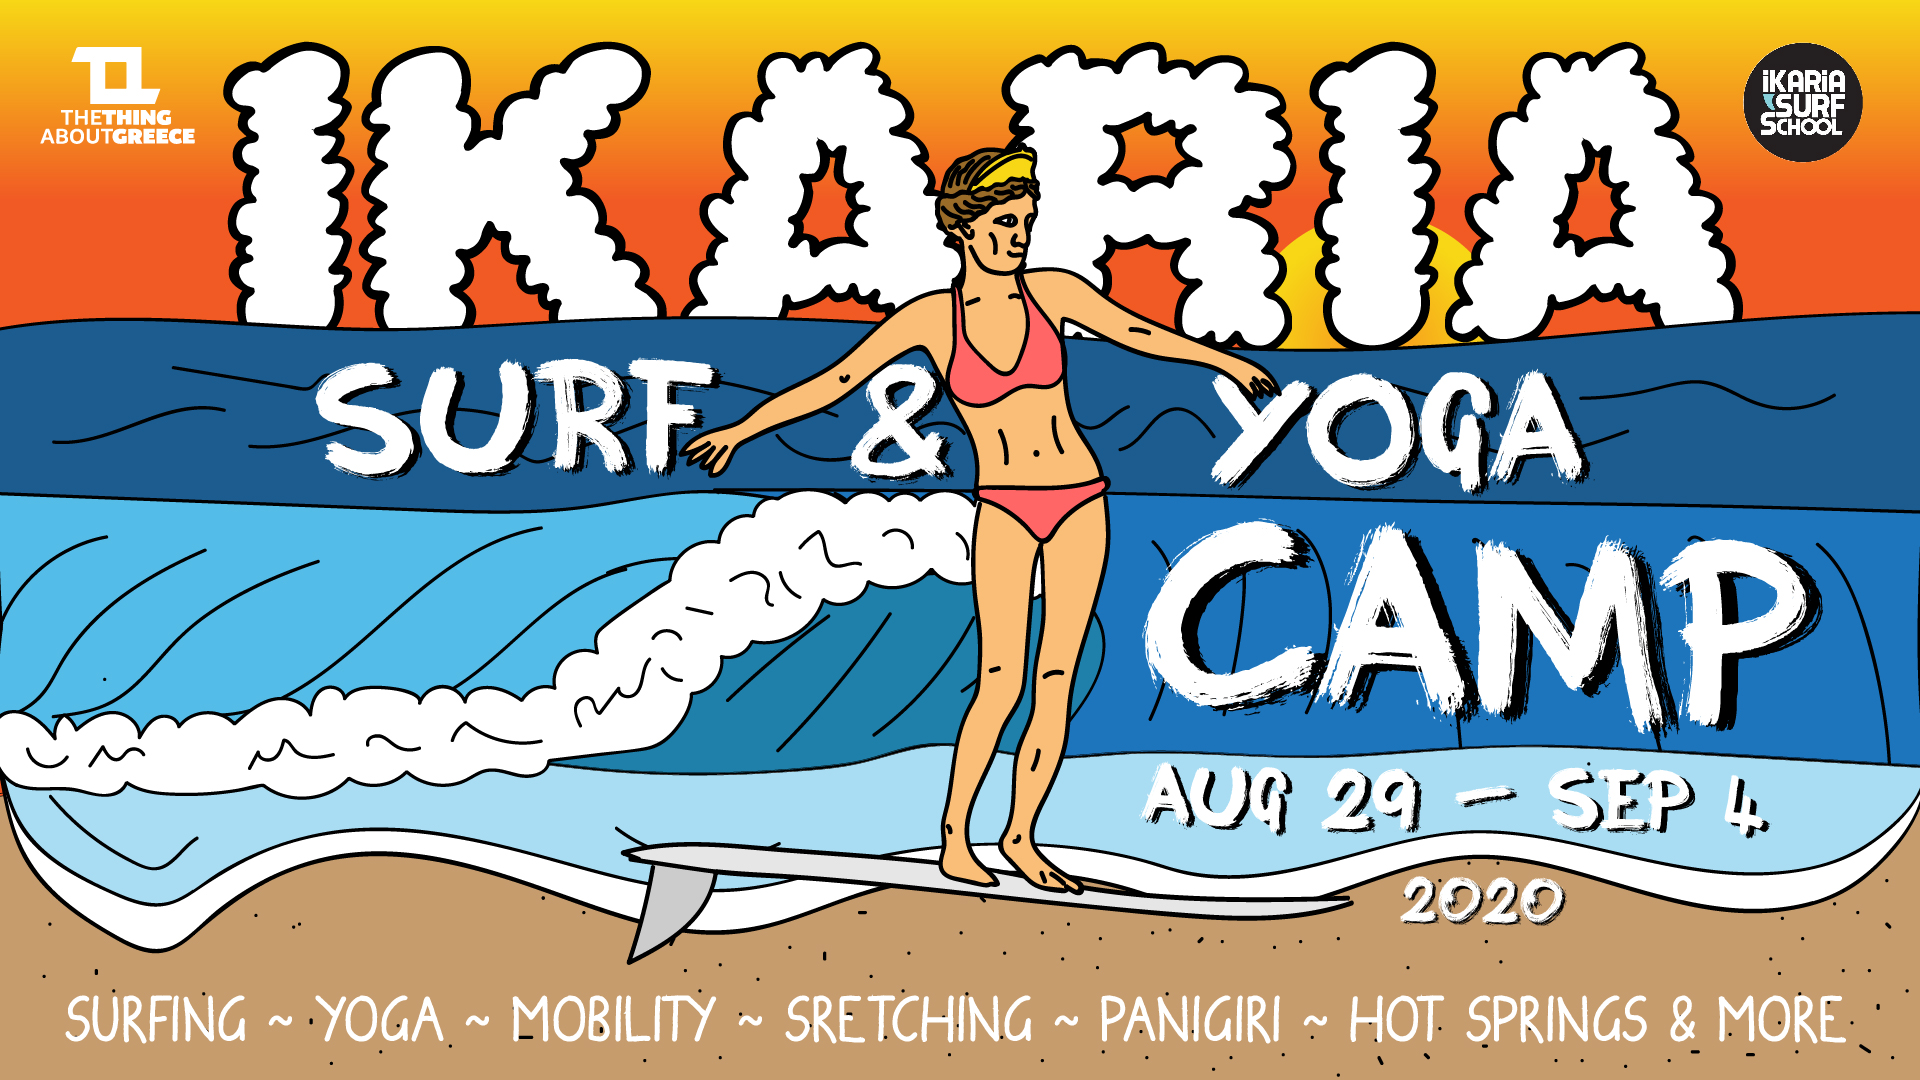 IKARIA SURF & YOGA CAMP 2020